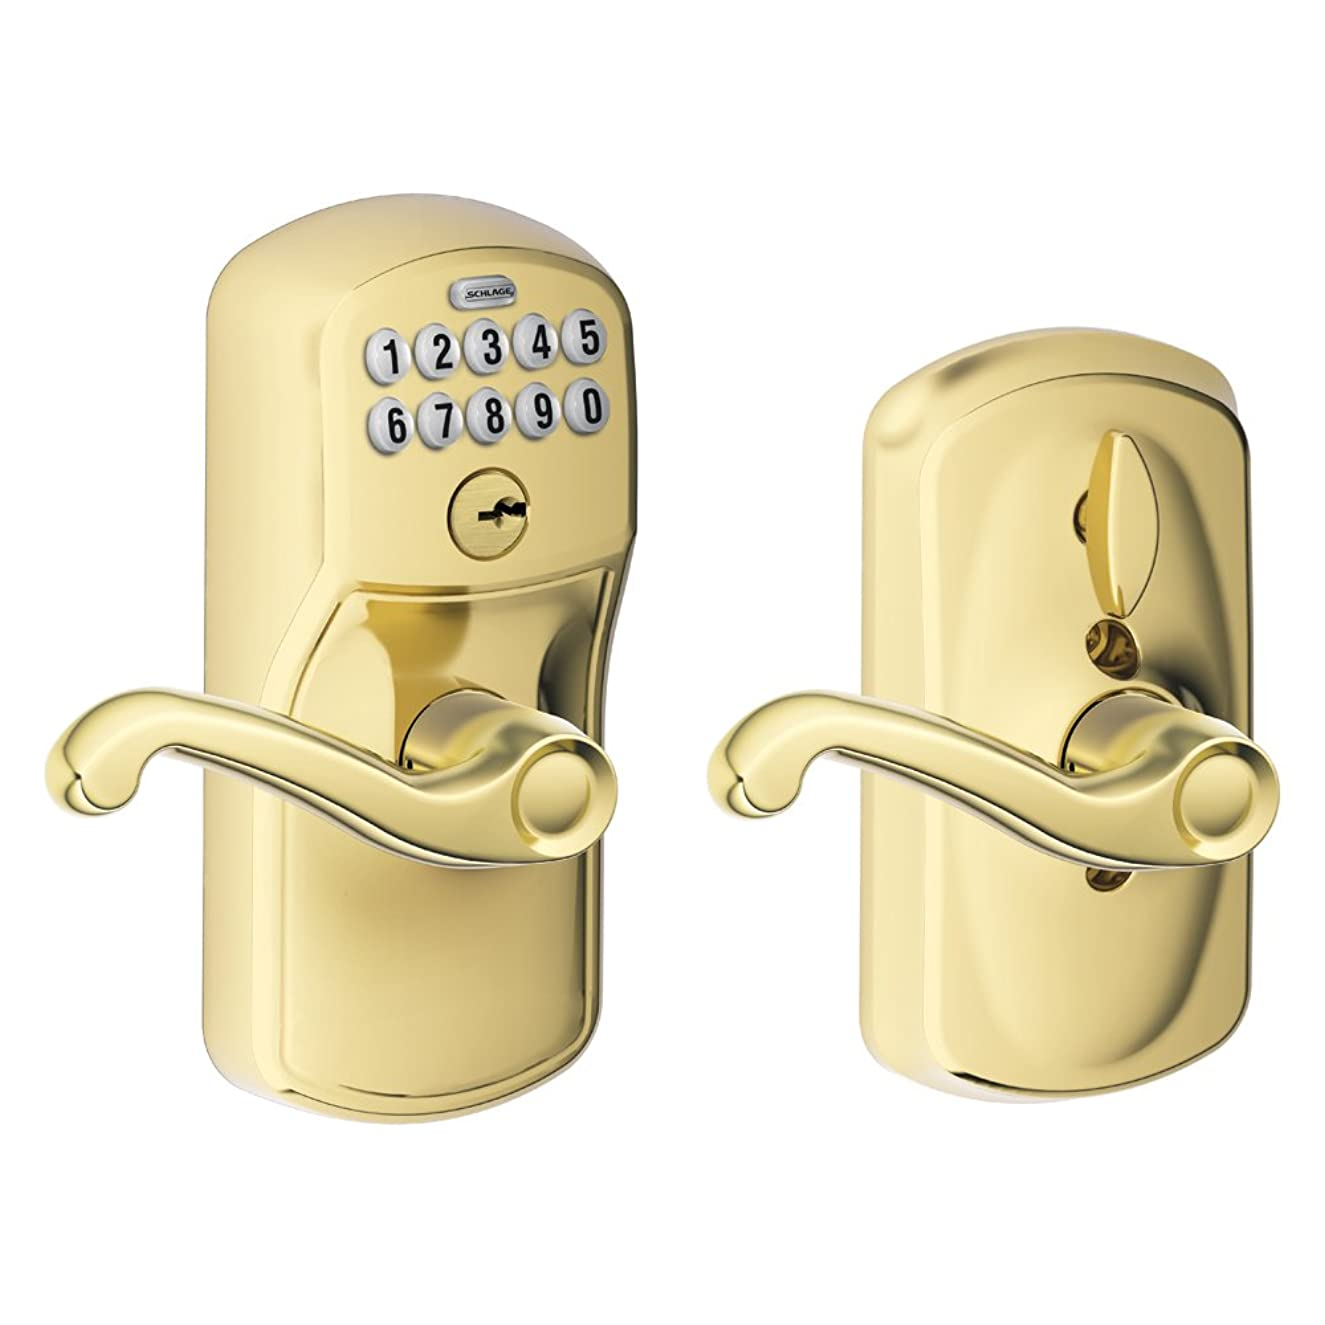 Schlage FE595 V PLY 505 FLA Plymouth Keypad Entry with Flex-Lock and Flair Style Levers, Bright Brass